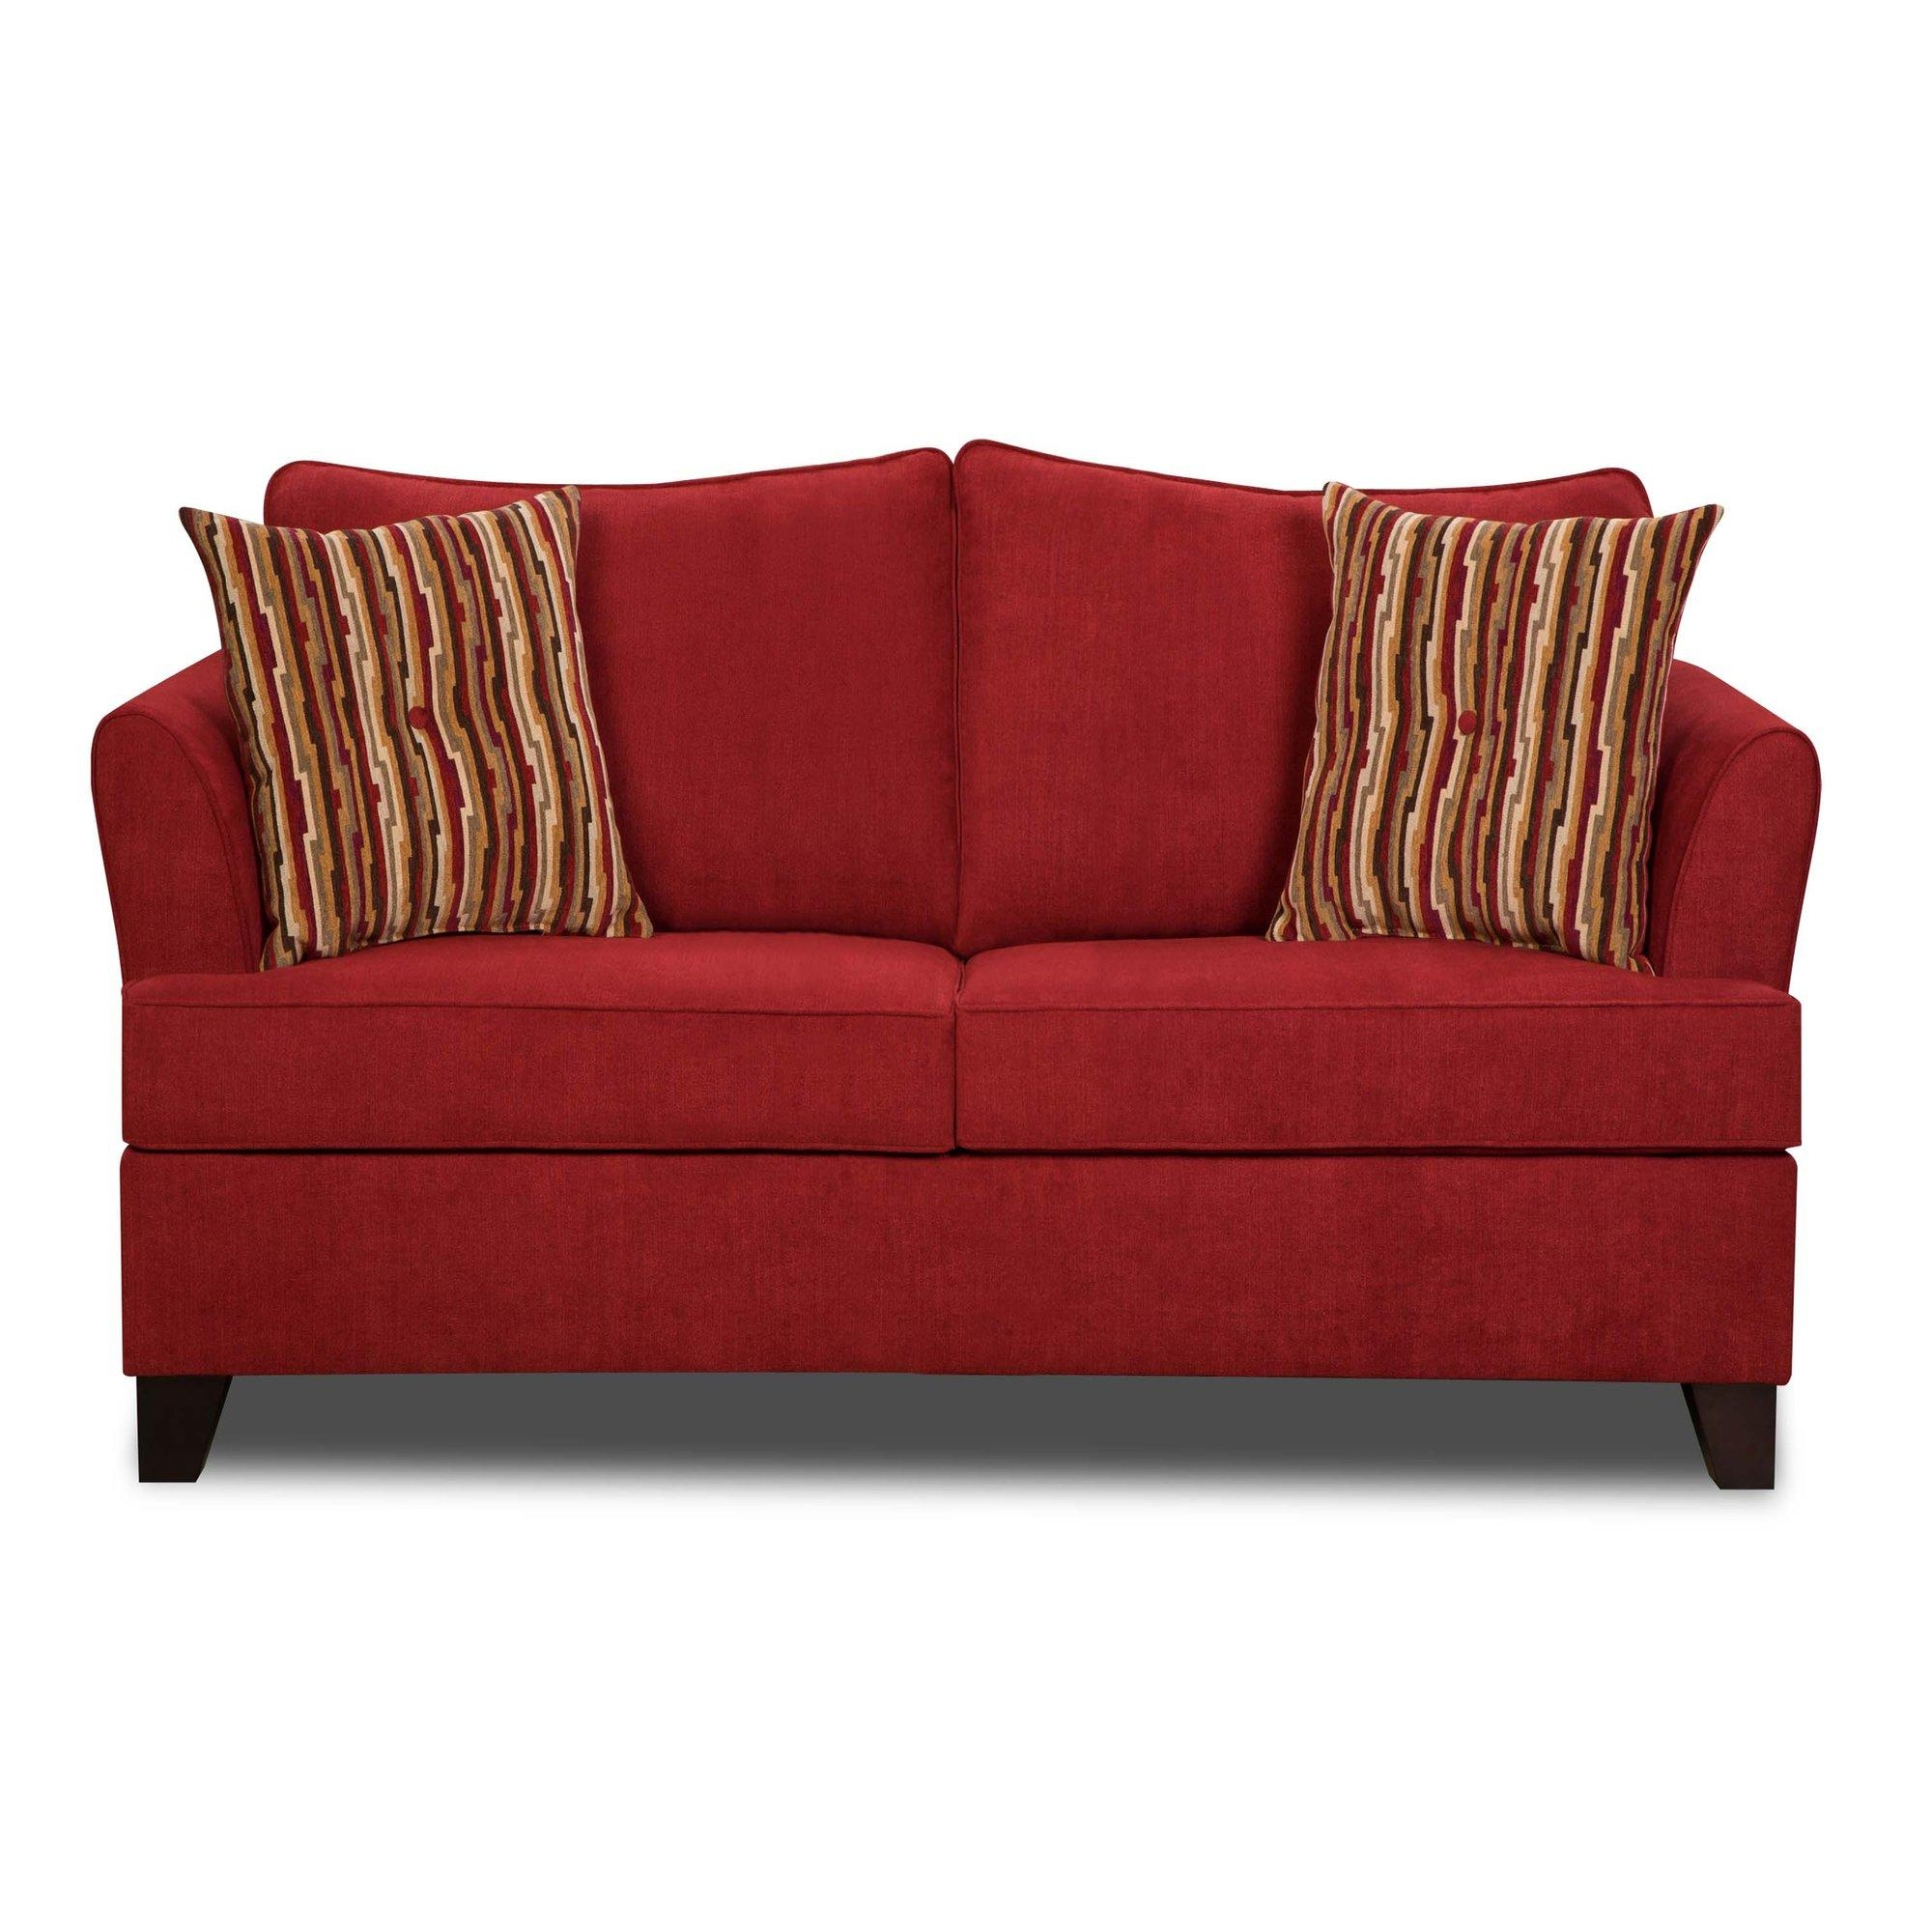 Furniture: Using Comfy Simmons Sleeper Sofa For Home Furniture In Red Sleeper Sofa (View 6 of 20)